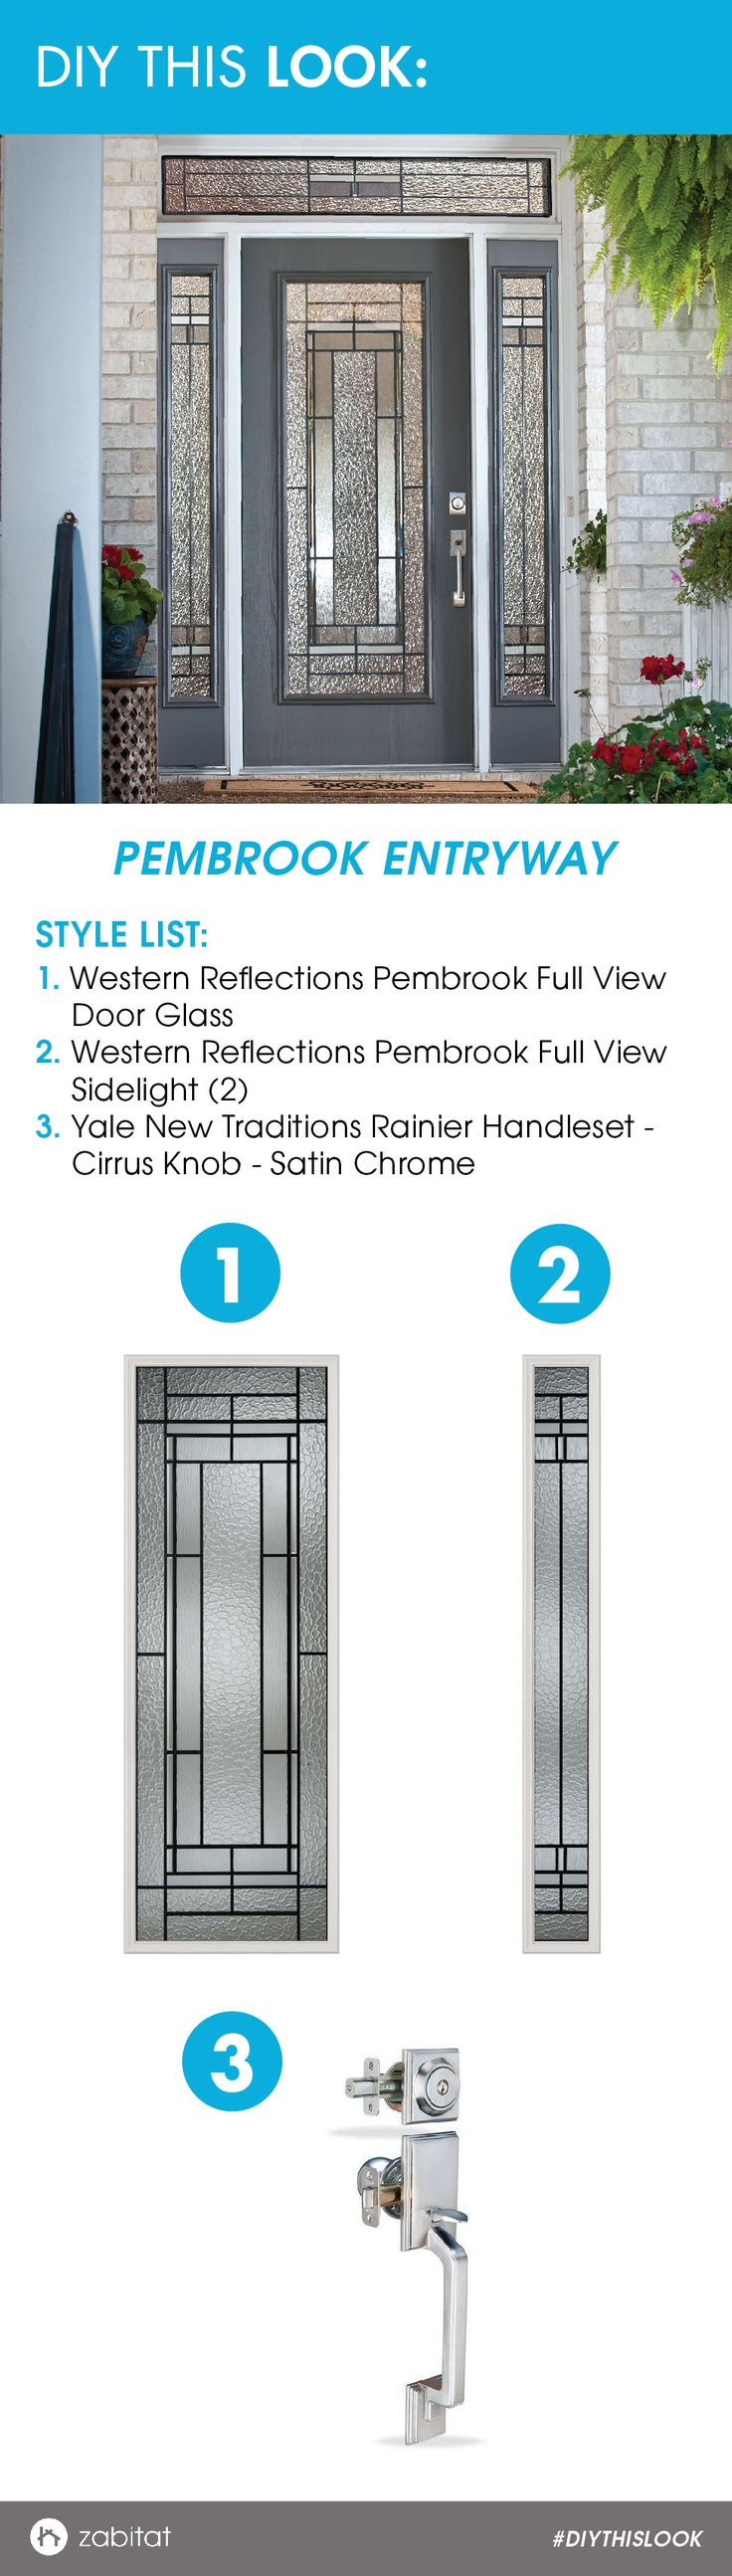 Western Reflections Pembrook Door Glass Insert paired with a Yale Satin Chrome Handleset